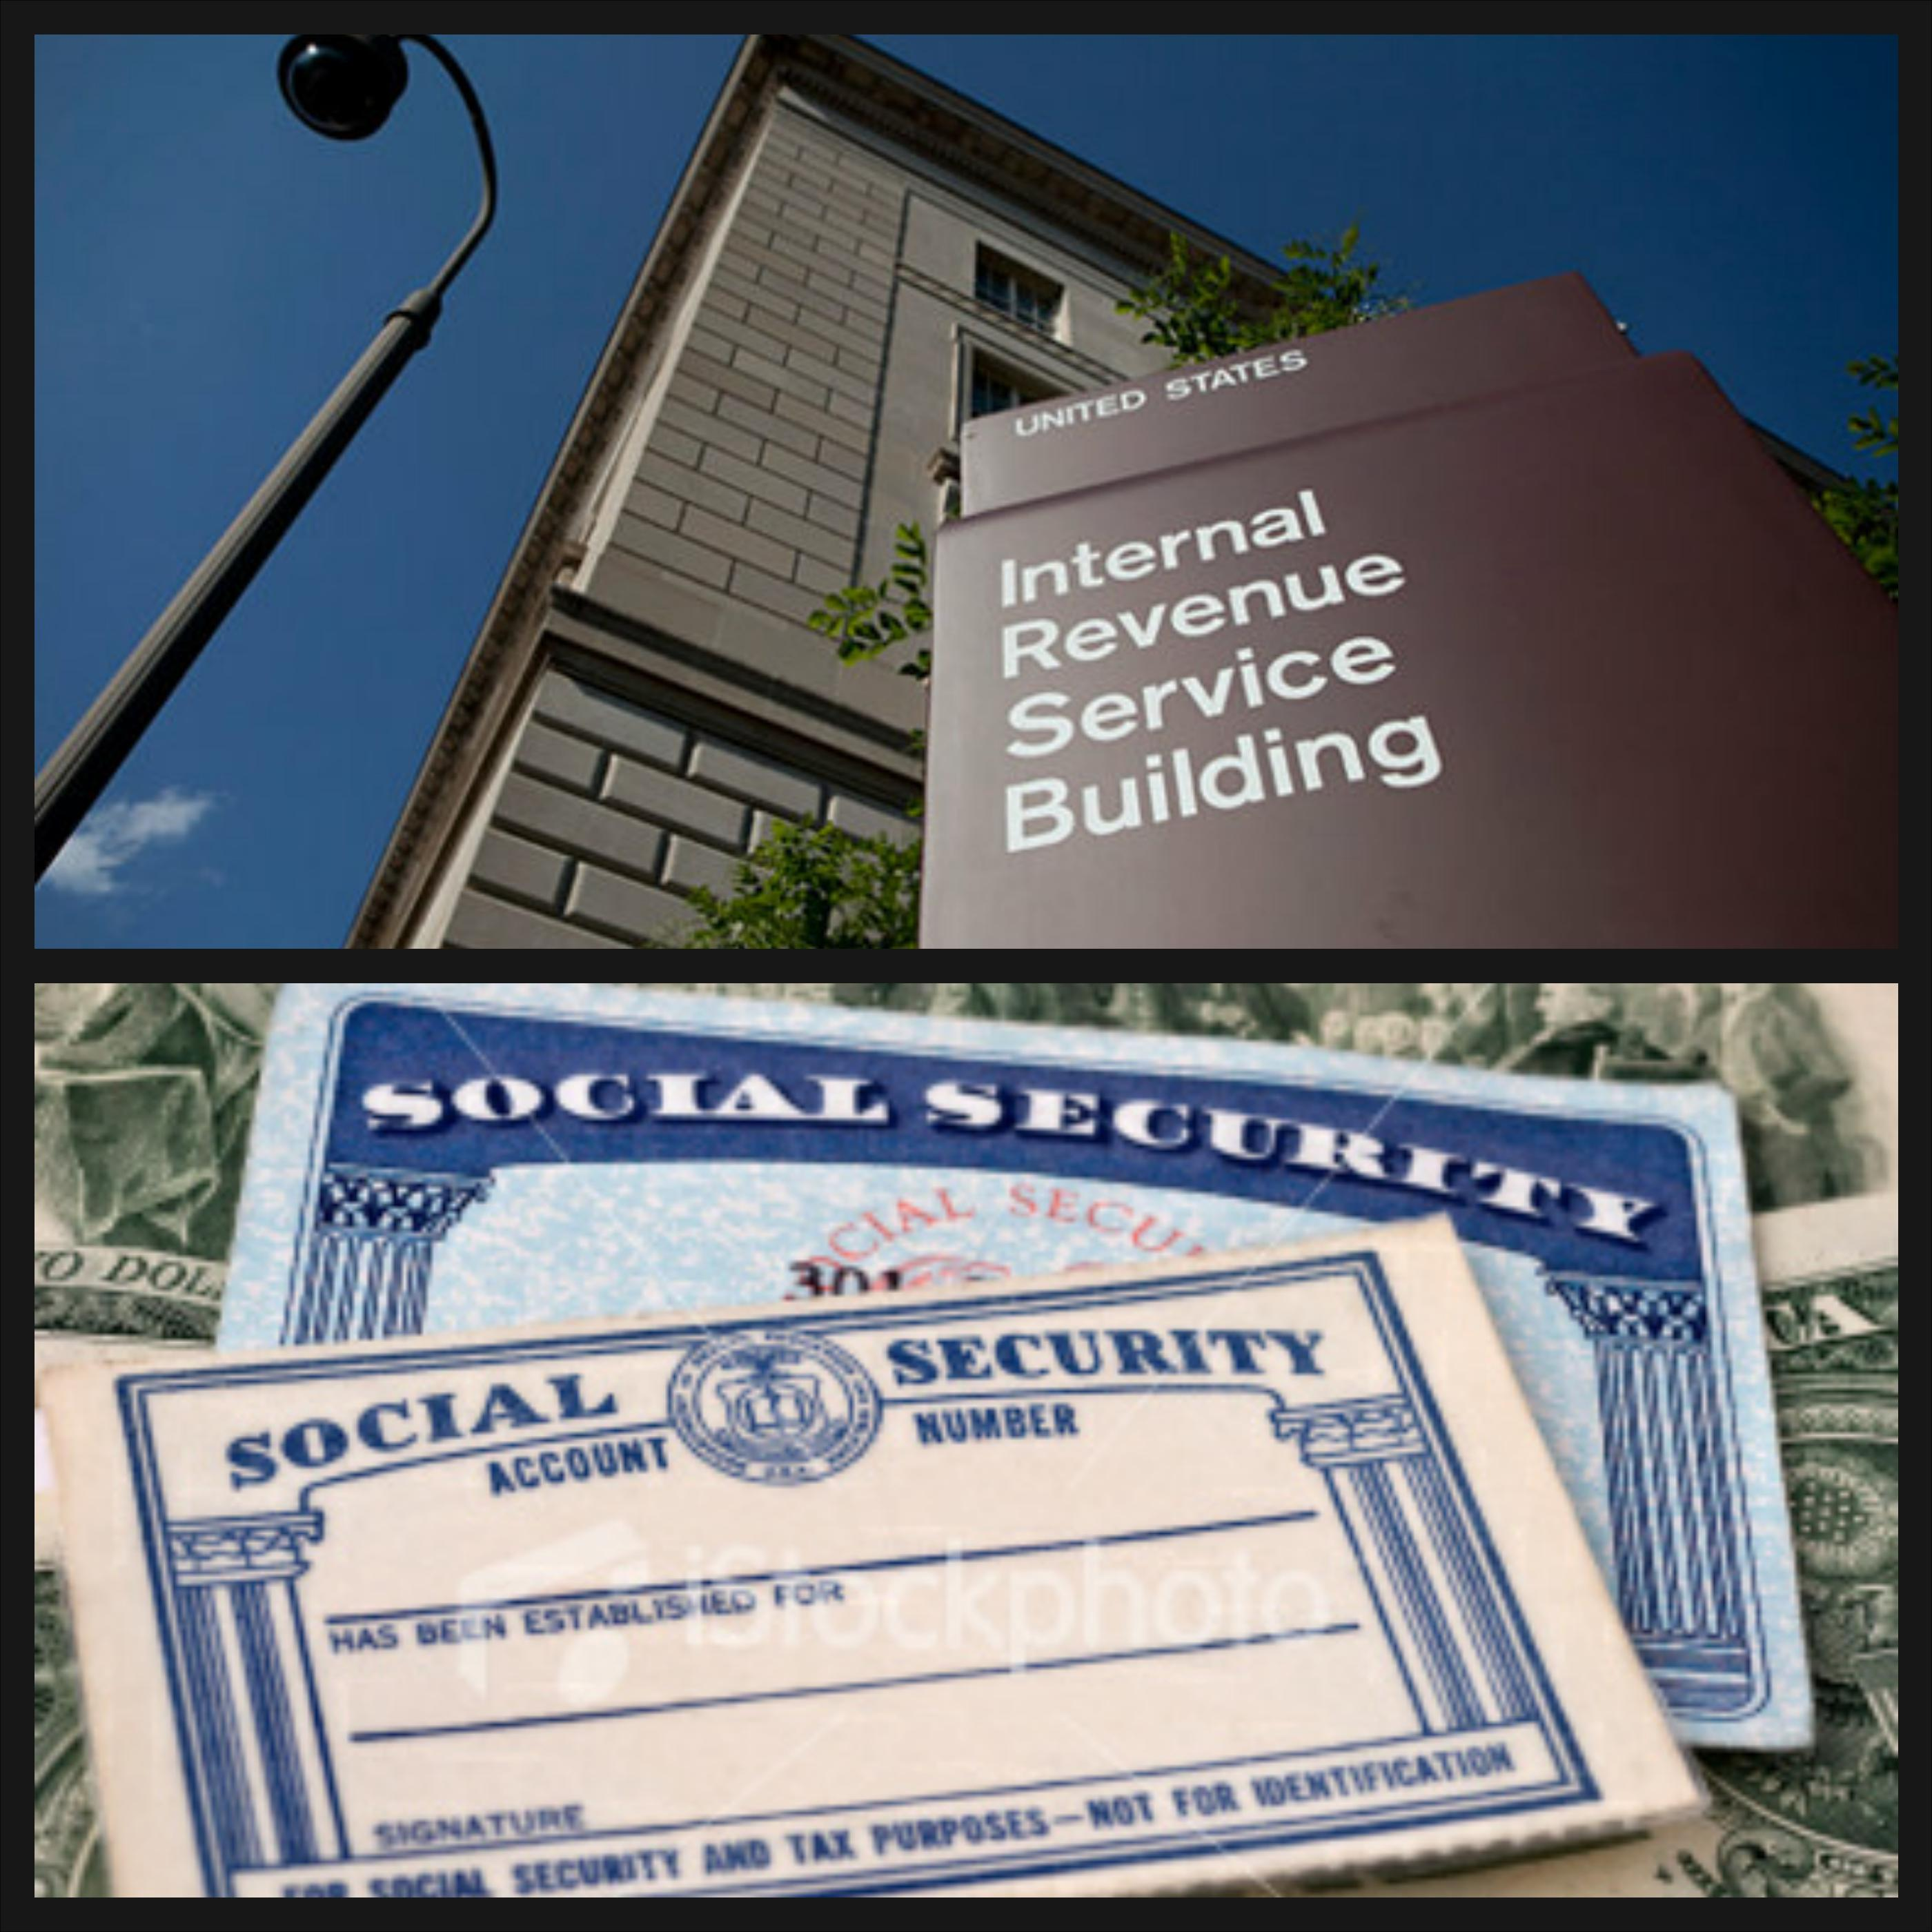 Irs Exposed Thousands Of Social Security Numbers Online